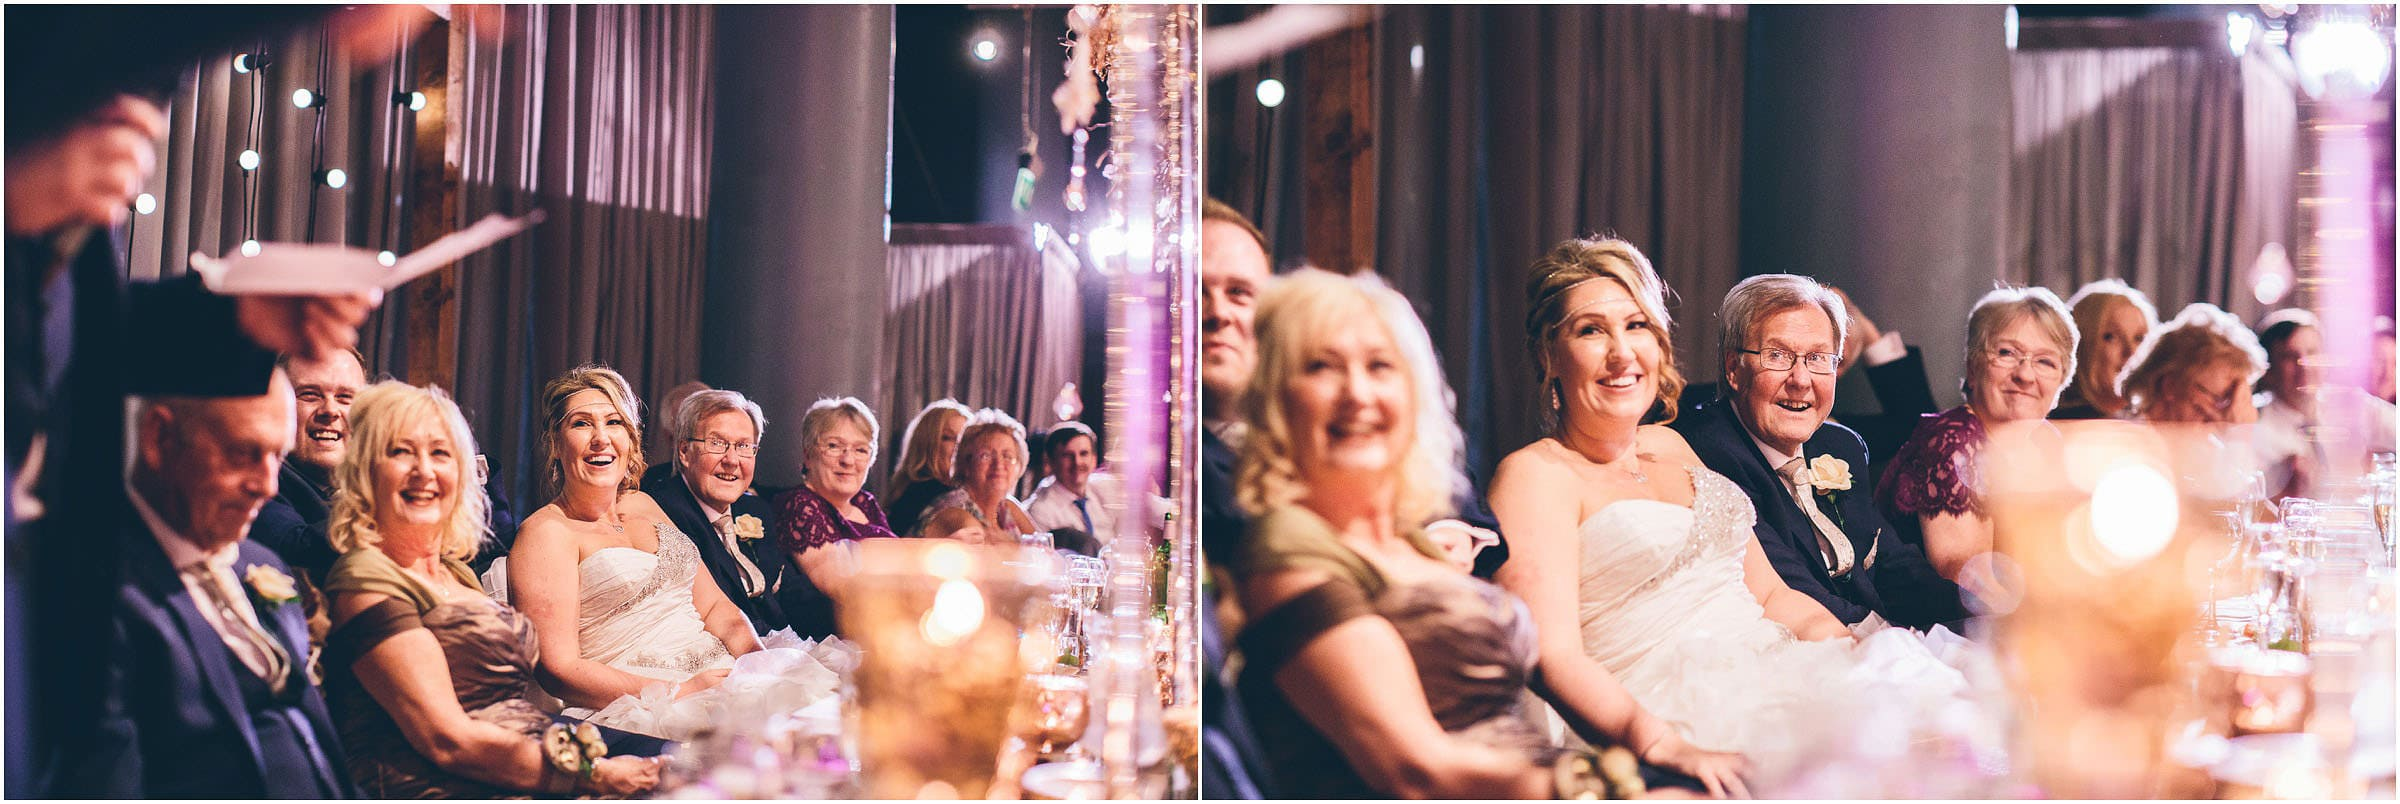 The_Place_Hotel_Wedding_Photography_0084